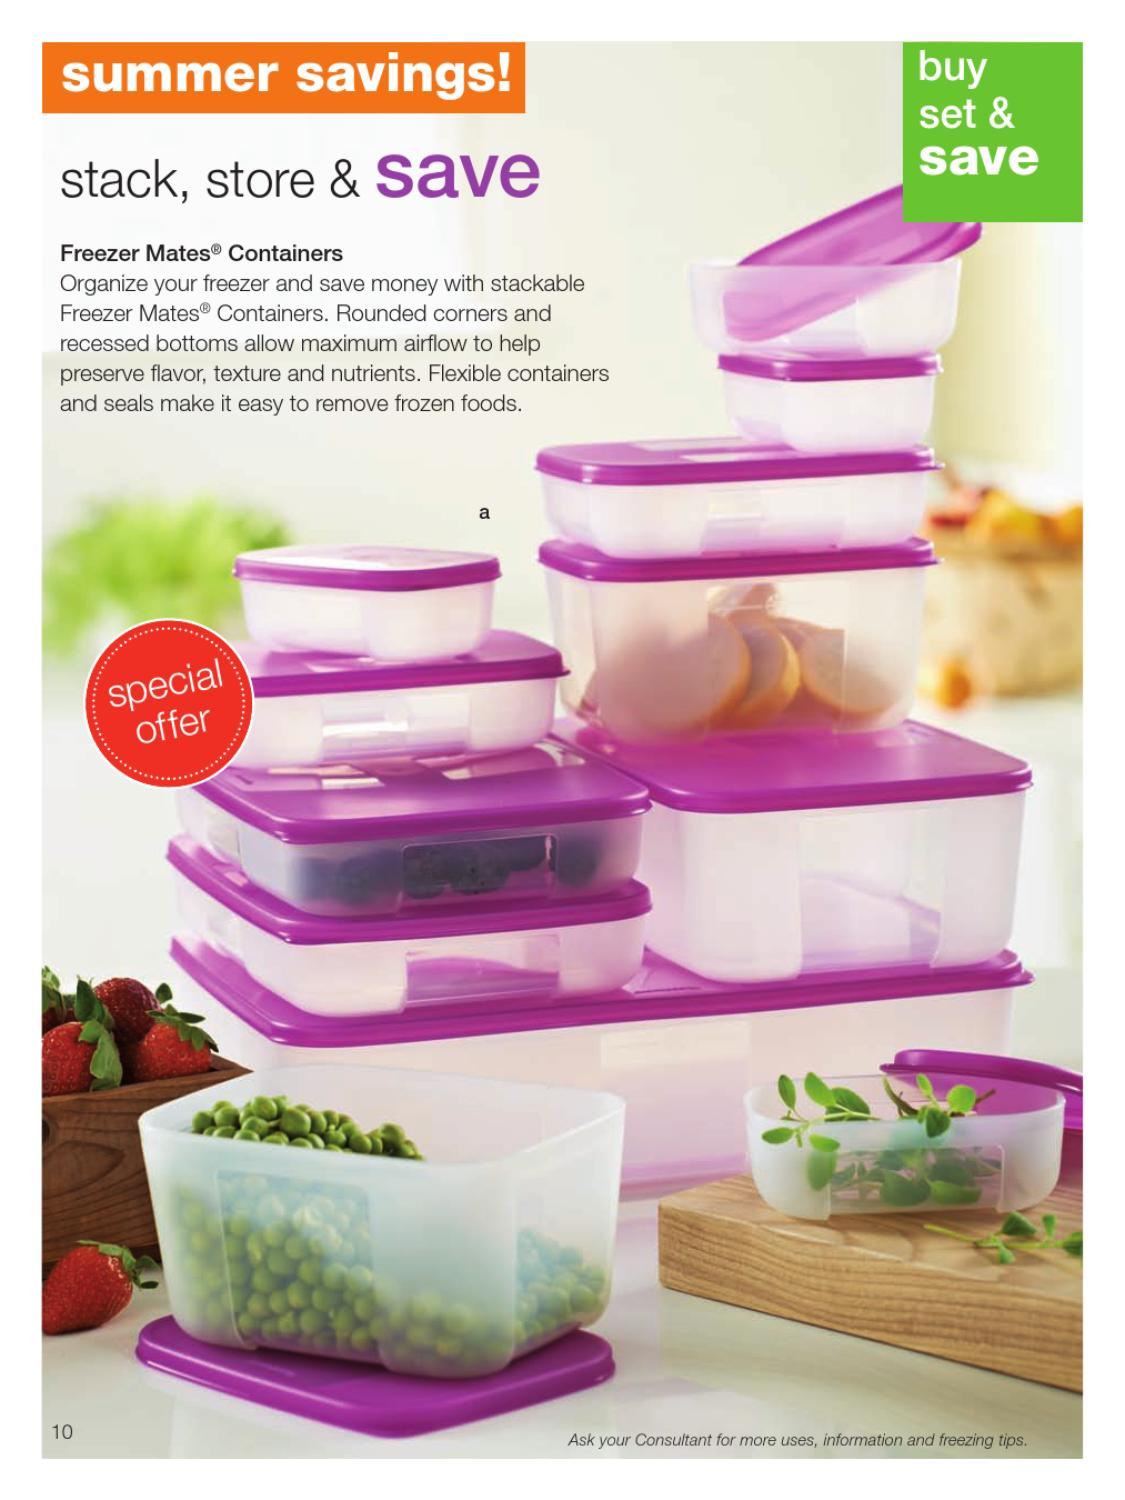 Tupperware Summer catalog 2013 by Nancy LaChance